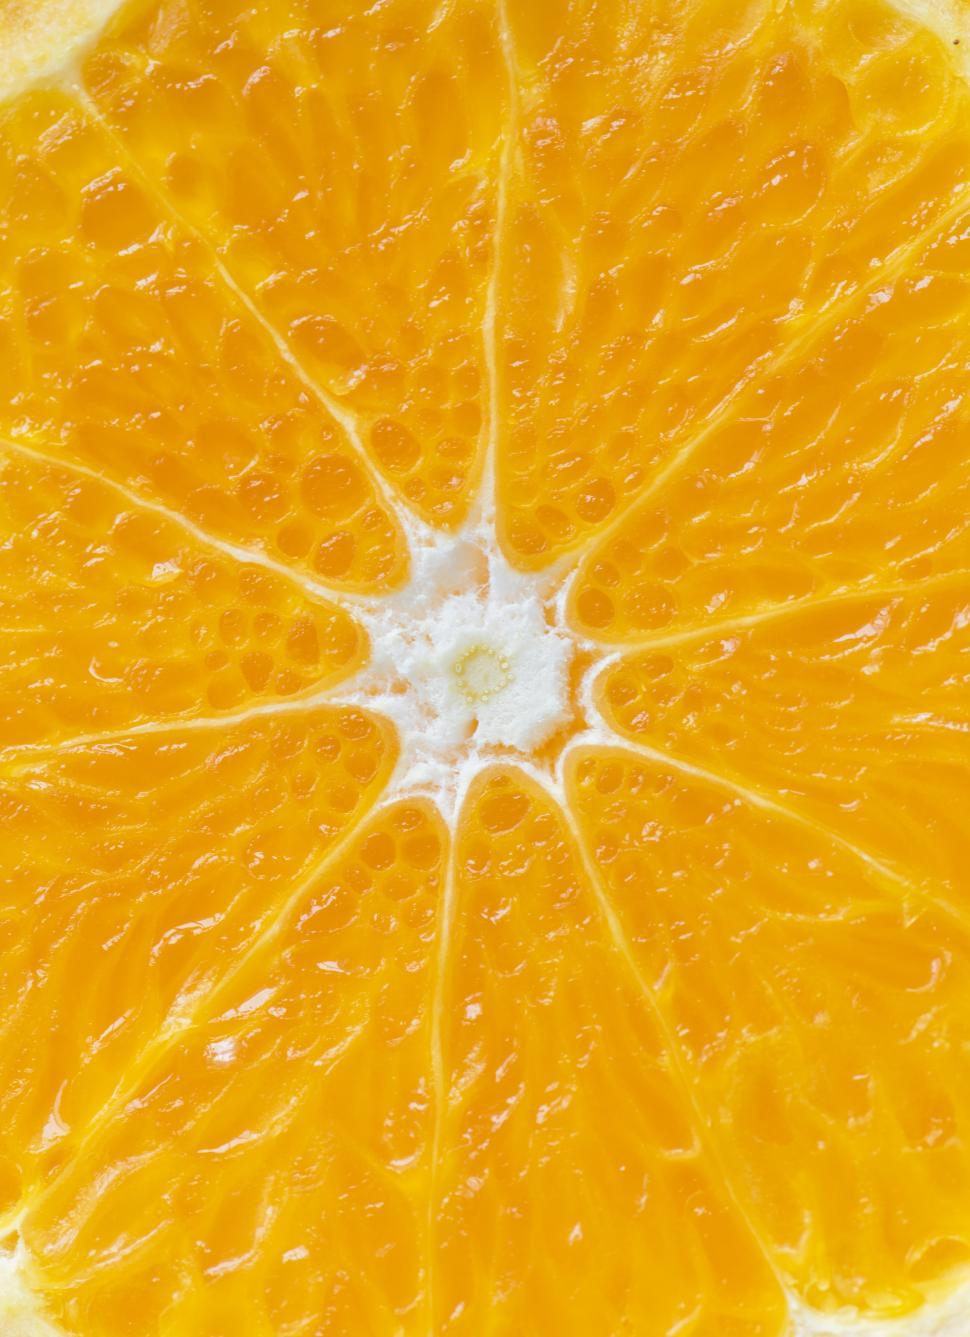 Download Free Stock HD Photo of Close up of a tangerine slice Online